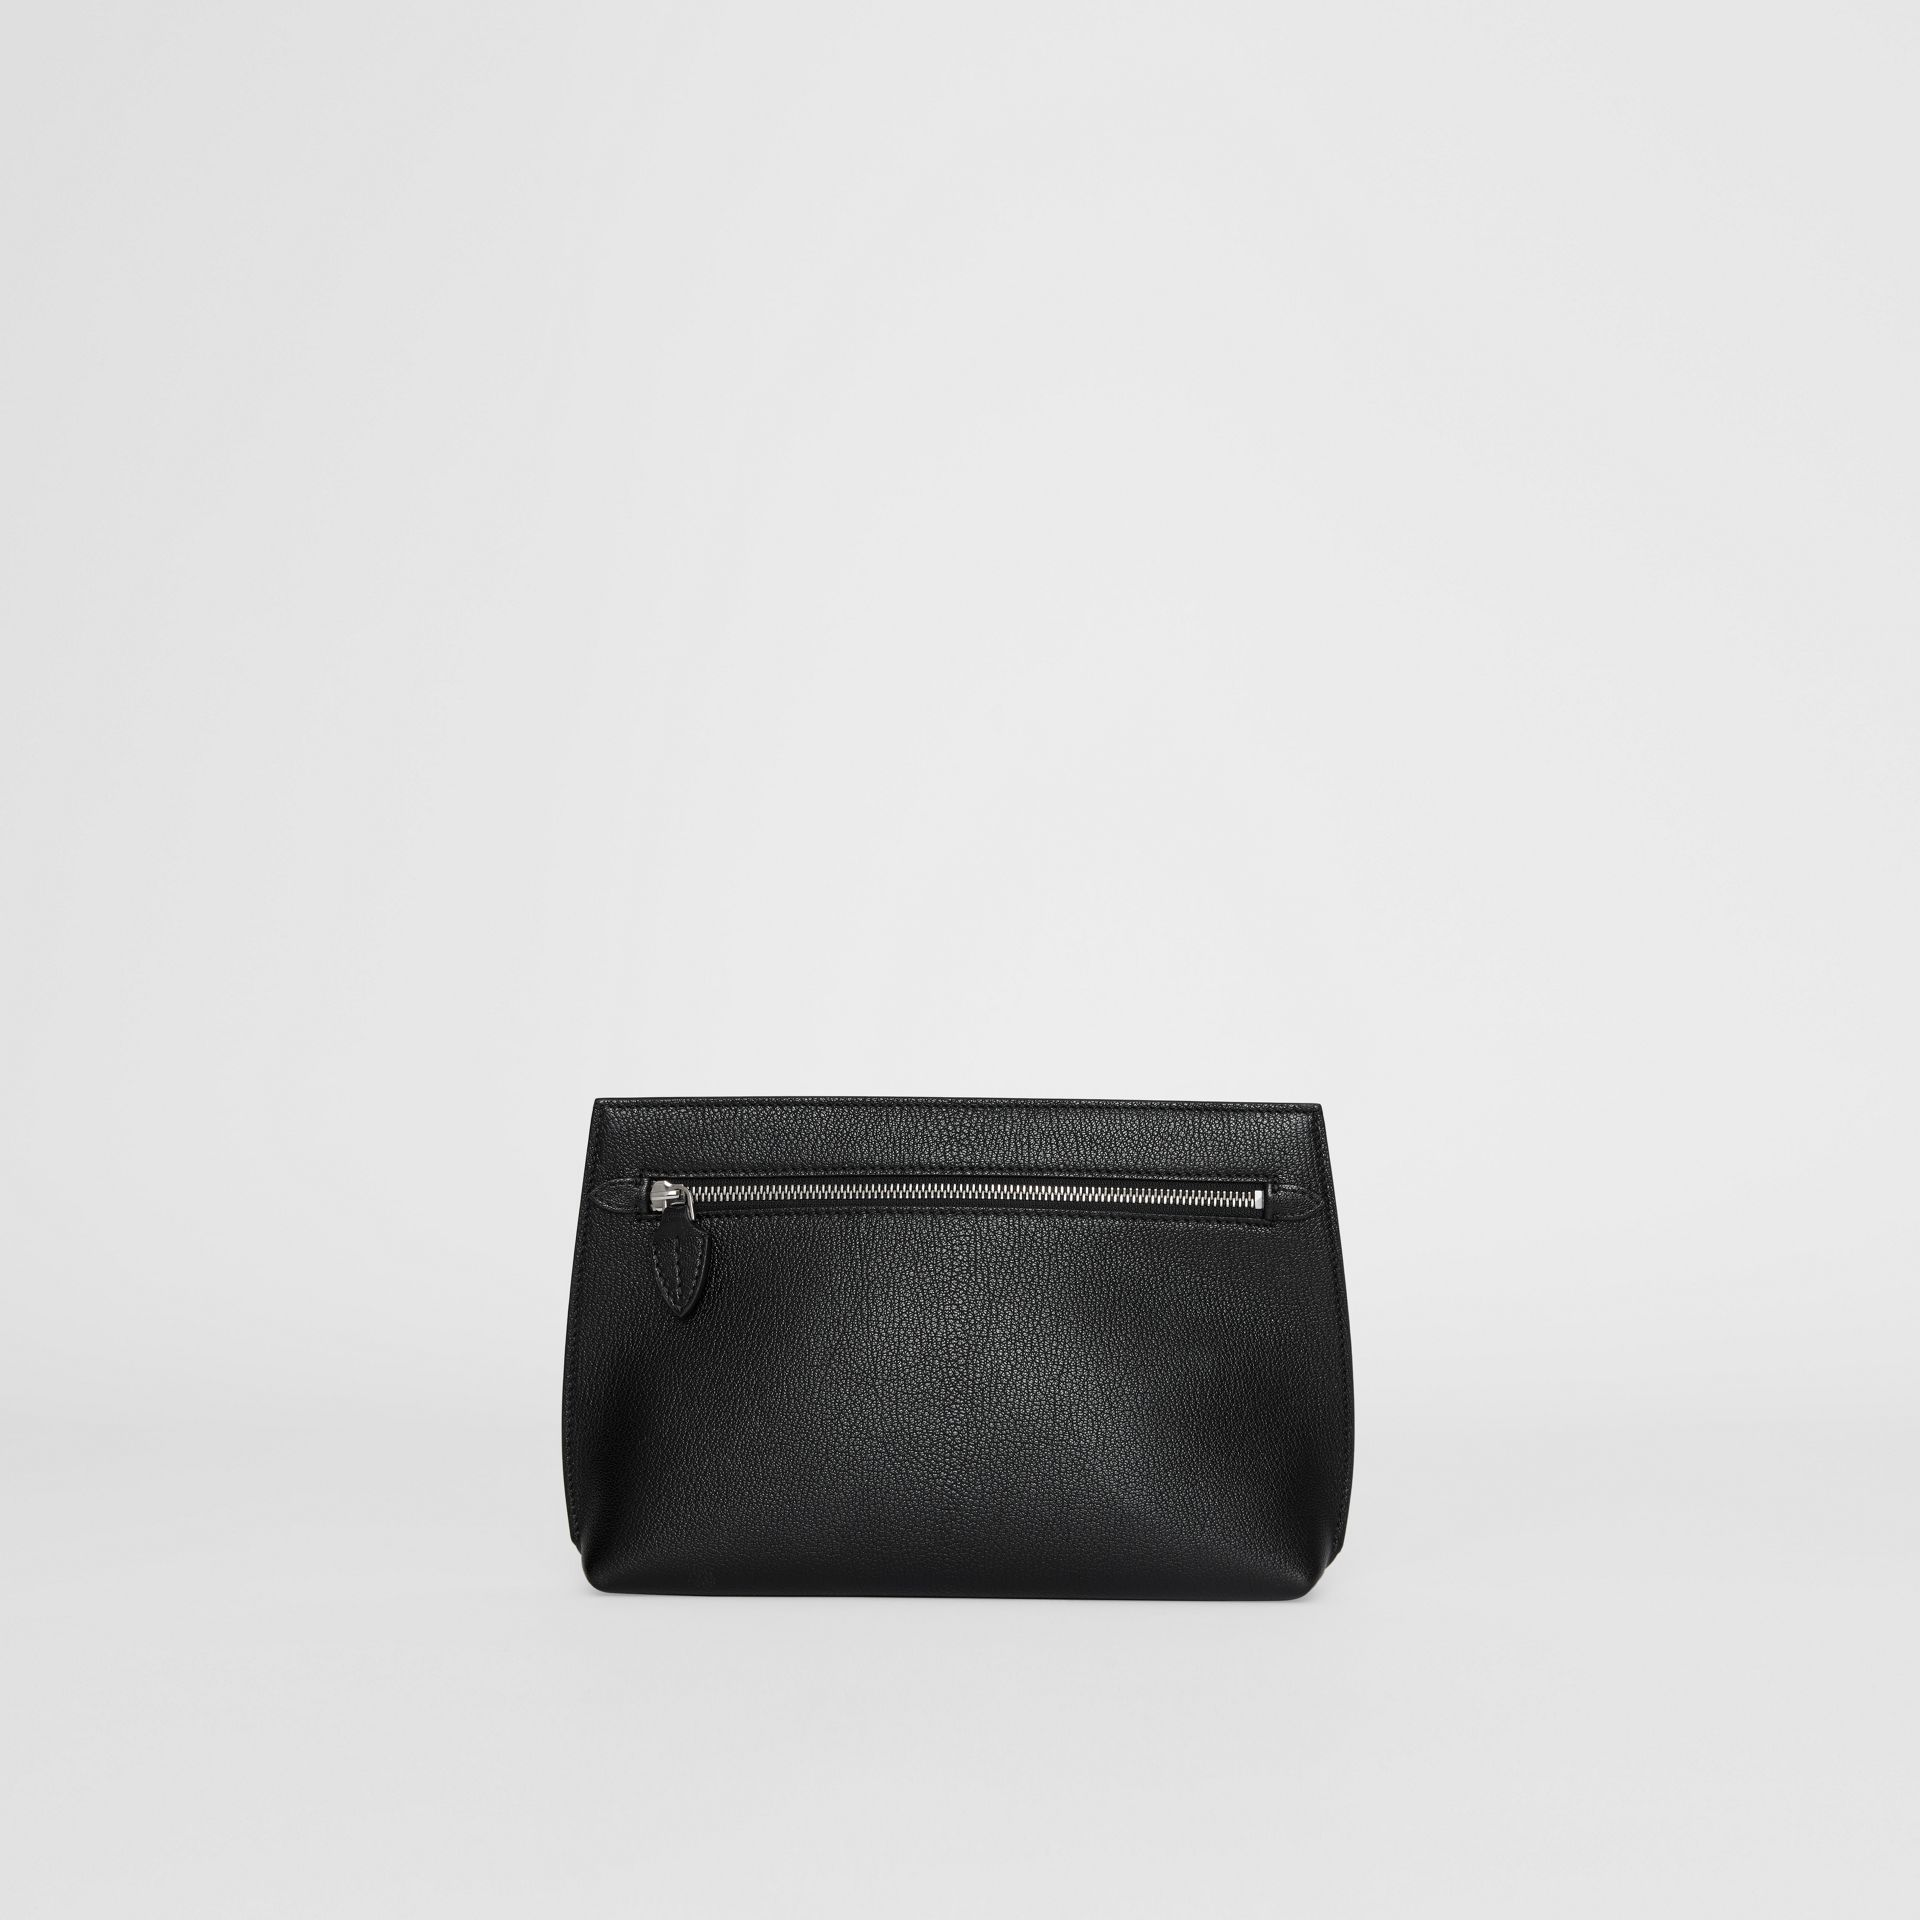 Grainy Leather Wristlet Clutch in Black - Women | Burberry - gallery image 7